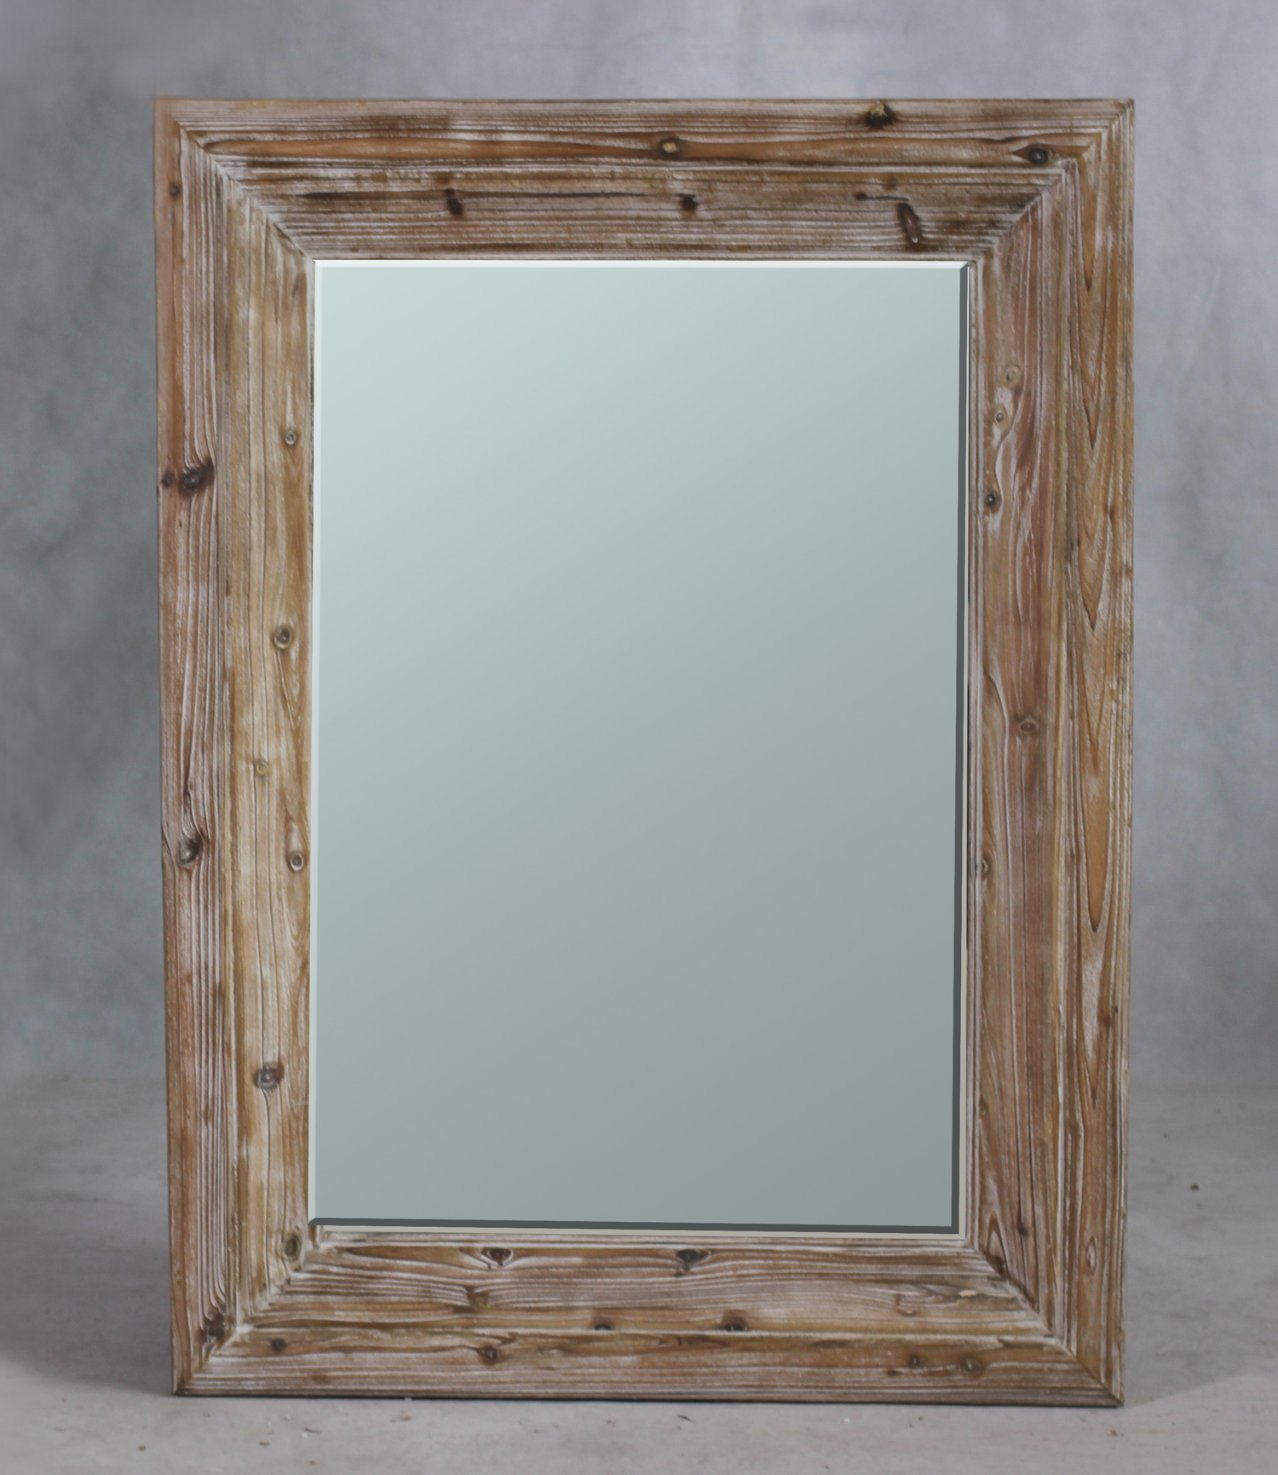 Beveled Wall Mirror Frame in Natural Timber Finish for Home Furniture